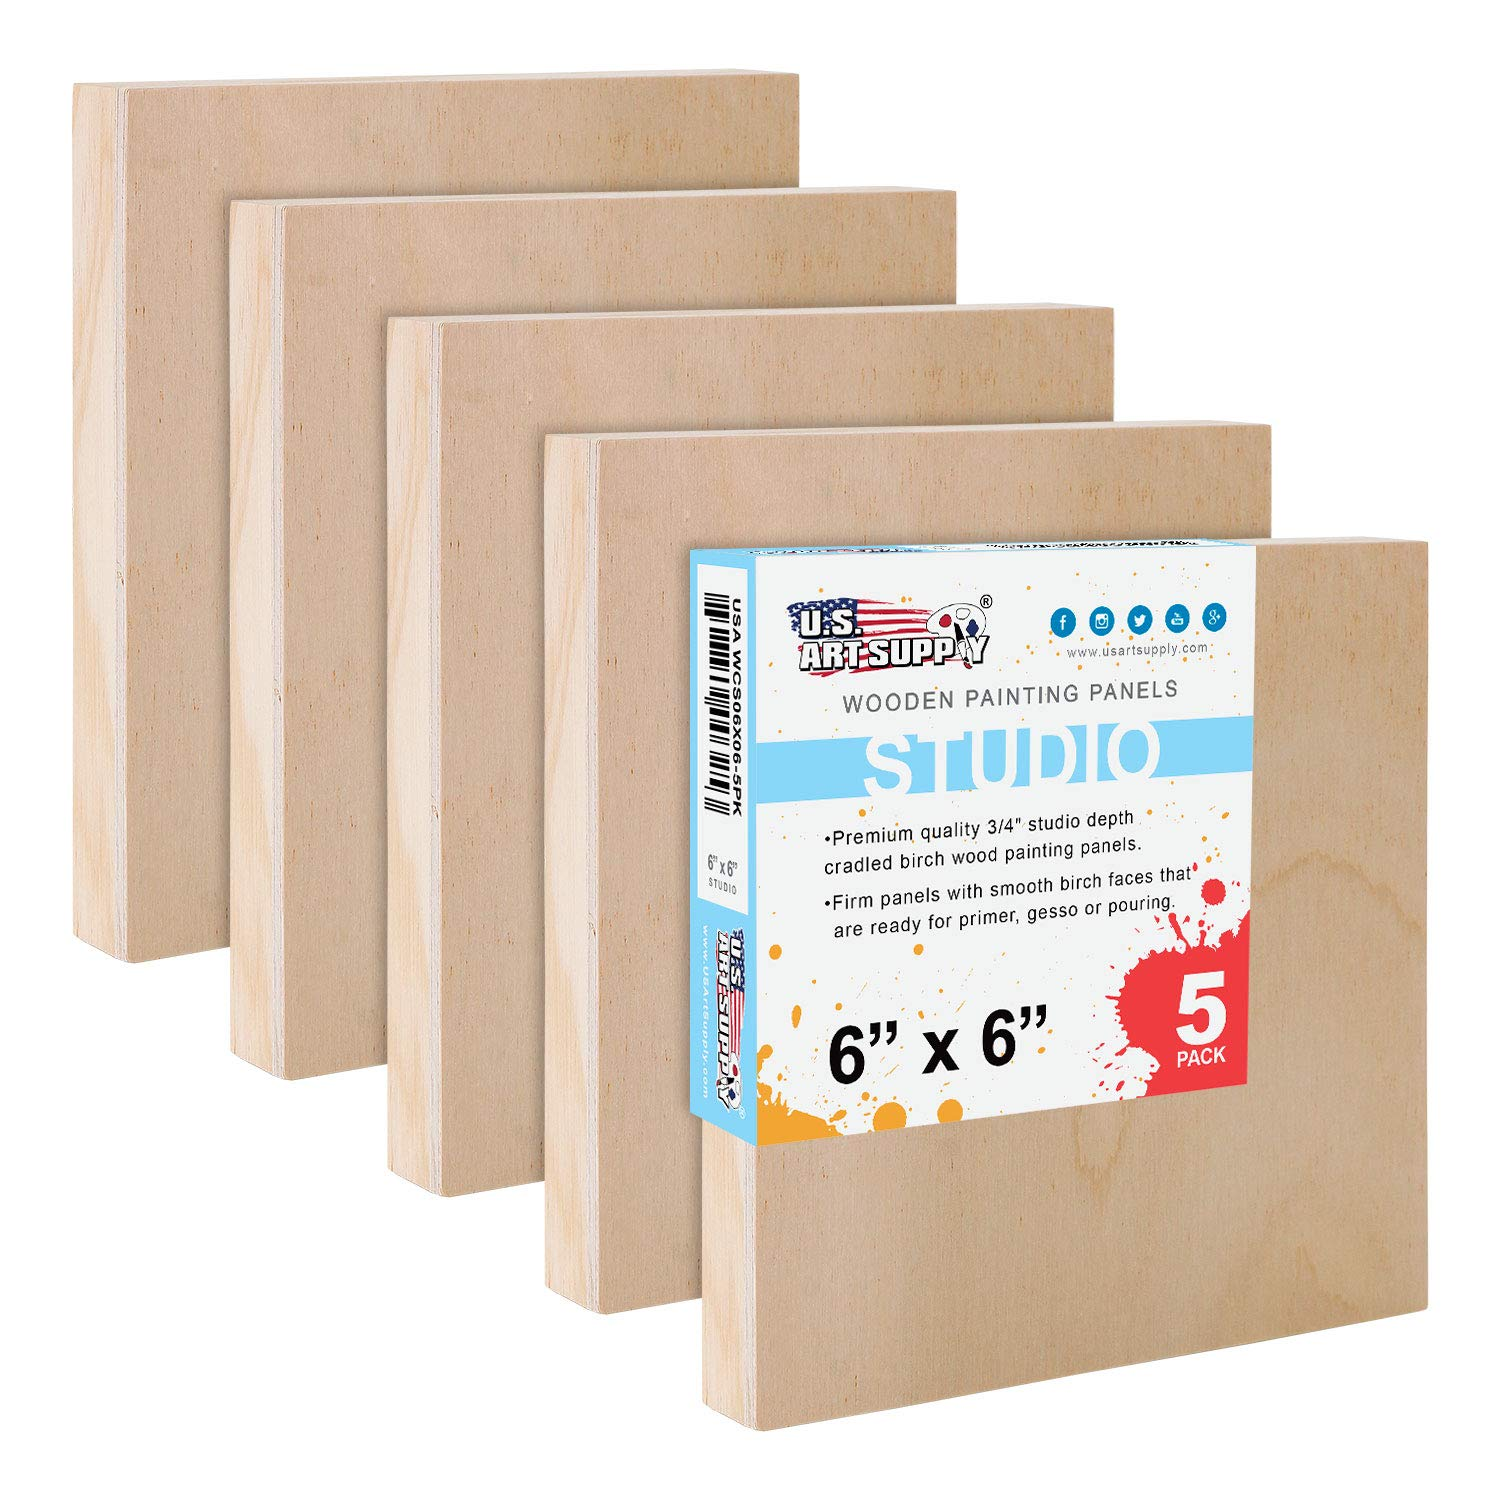 U.S. Art Supply 6'' x 6'' Birch Wood Paint Pouring Panel Boards, Studio 3/4'' Deep Cradle (Pack of 5) - Artist Wooden Wall Canvases - Painting Mixed-Media Craft, Acrylic, Oil, Watercolor, Encaustic by US Art Supply